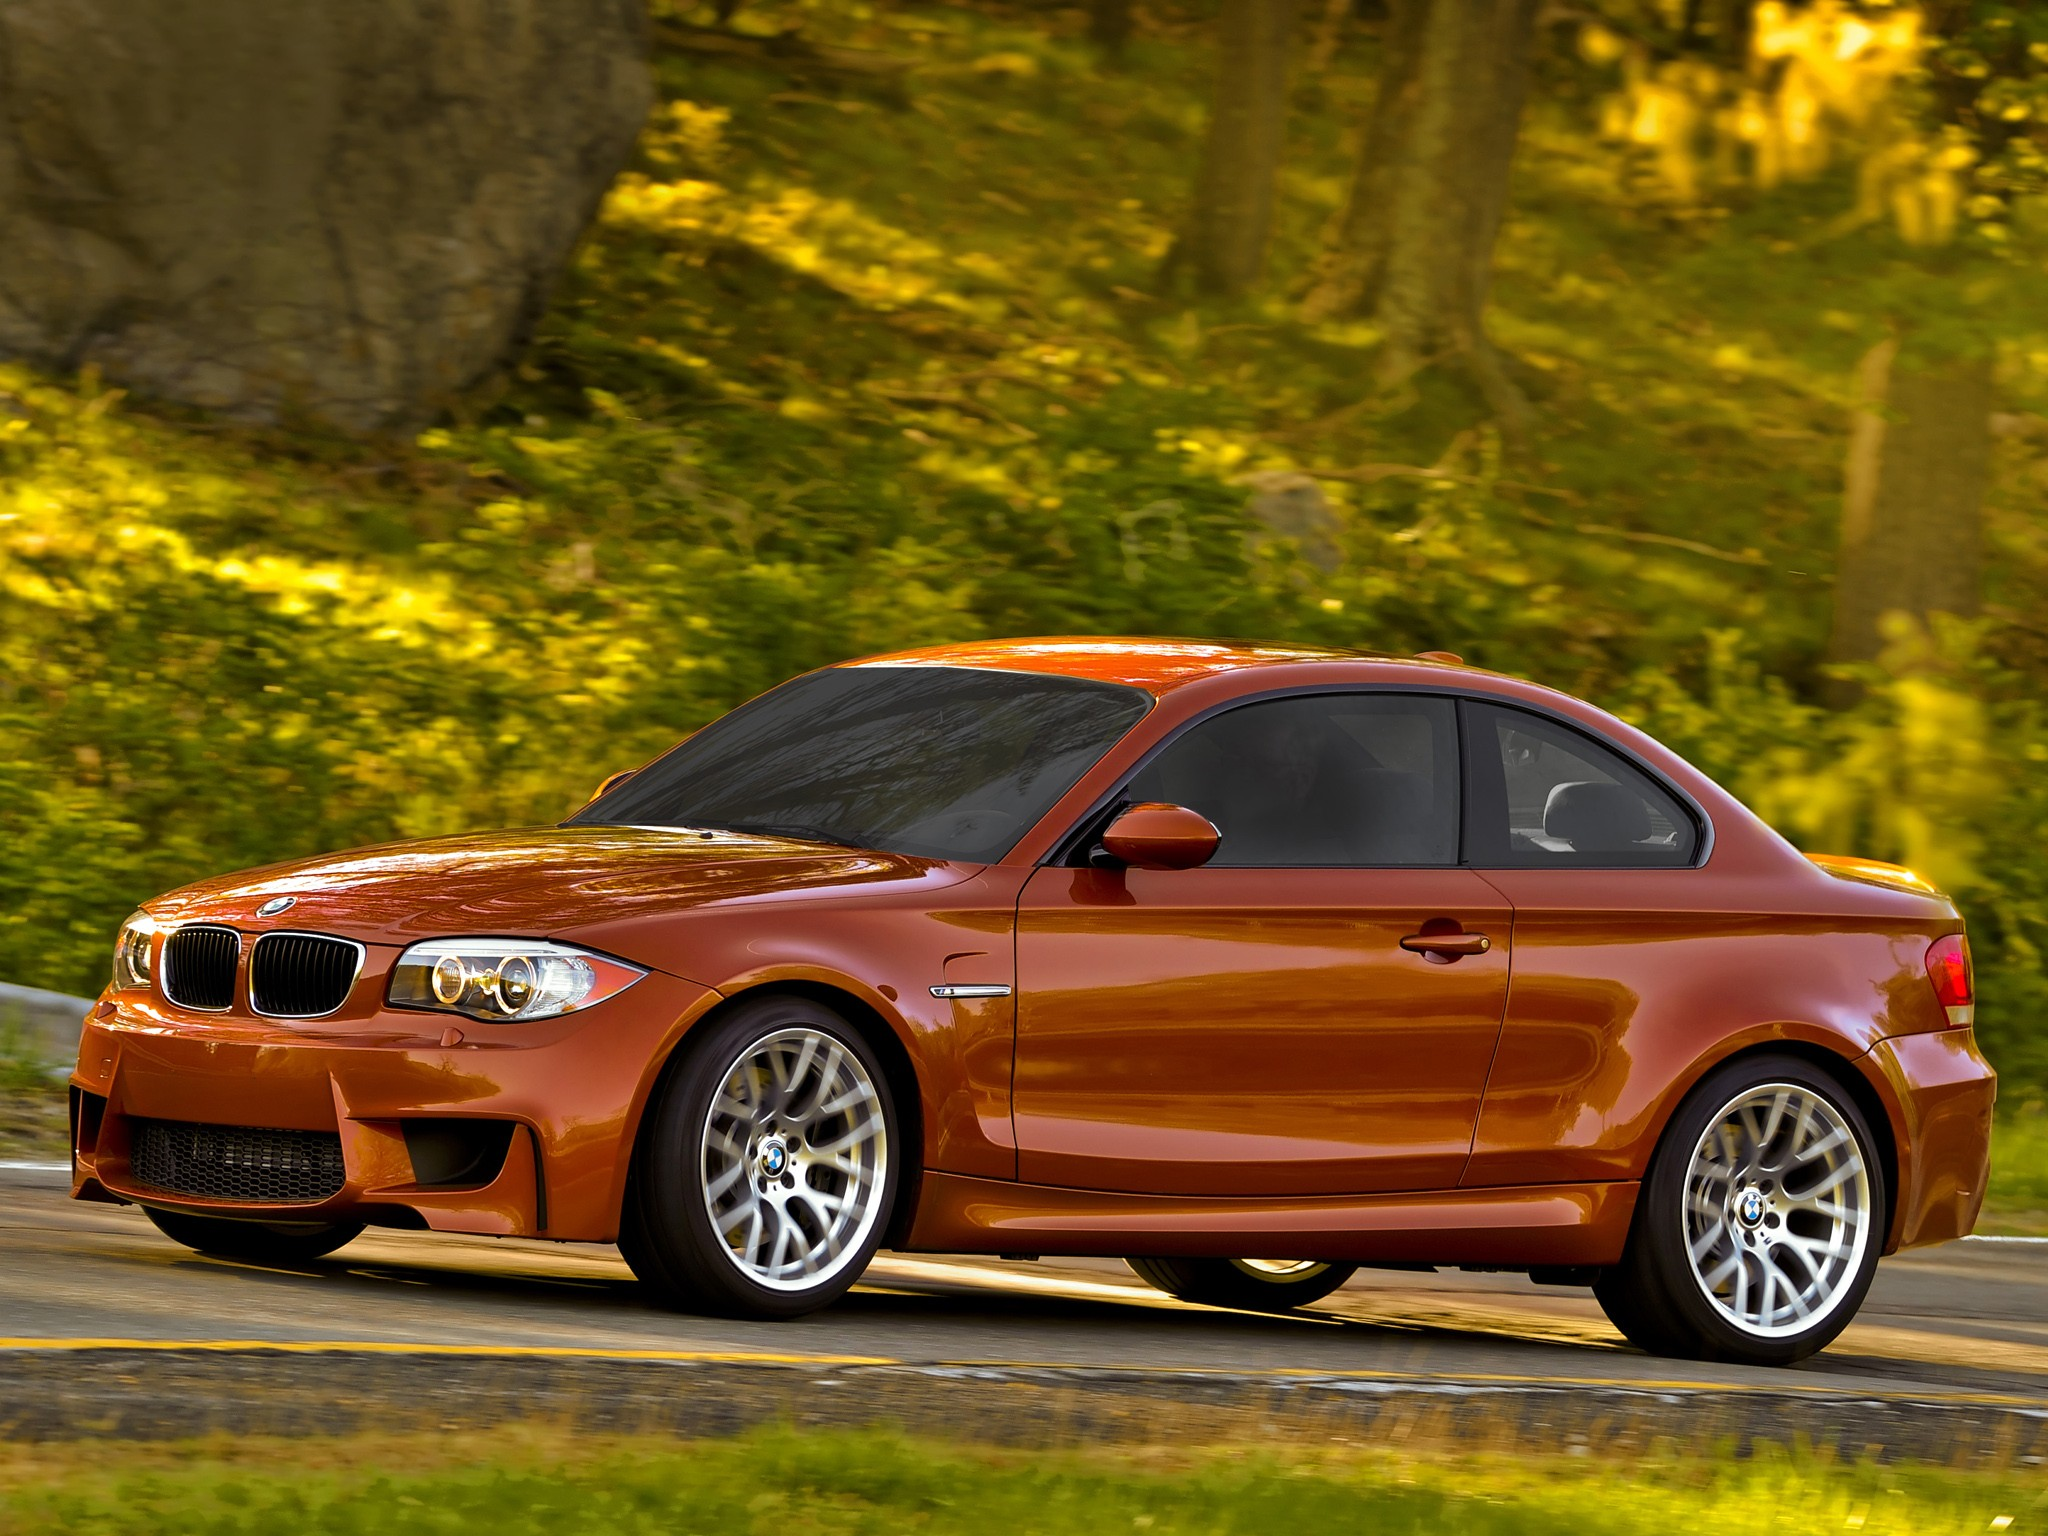 bmw 1 series m coupe e82 specs 2010 2011 2012 autoevolution. Black Bedroom Furniture Sets. Home Design Ideas